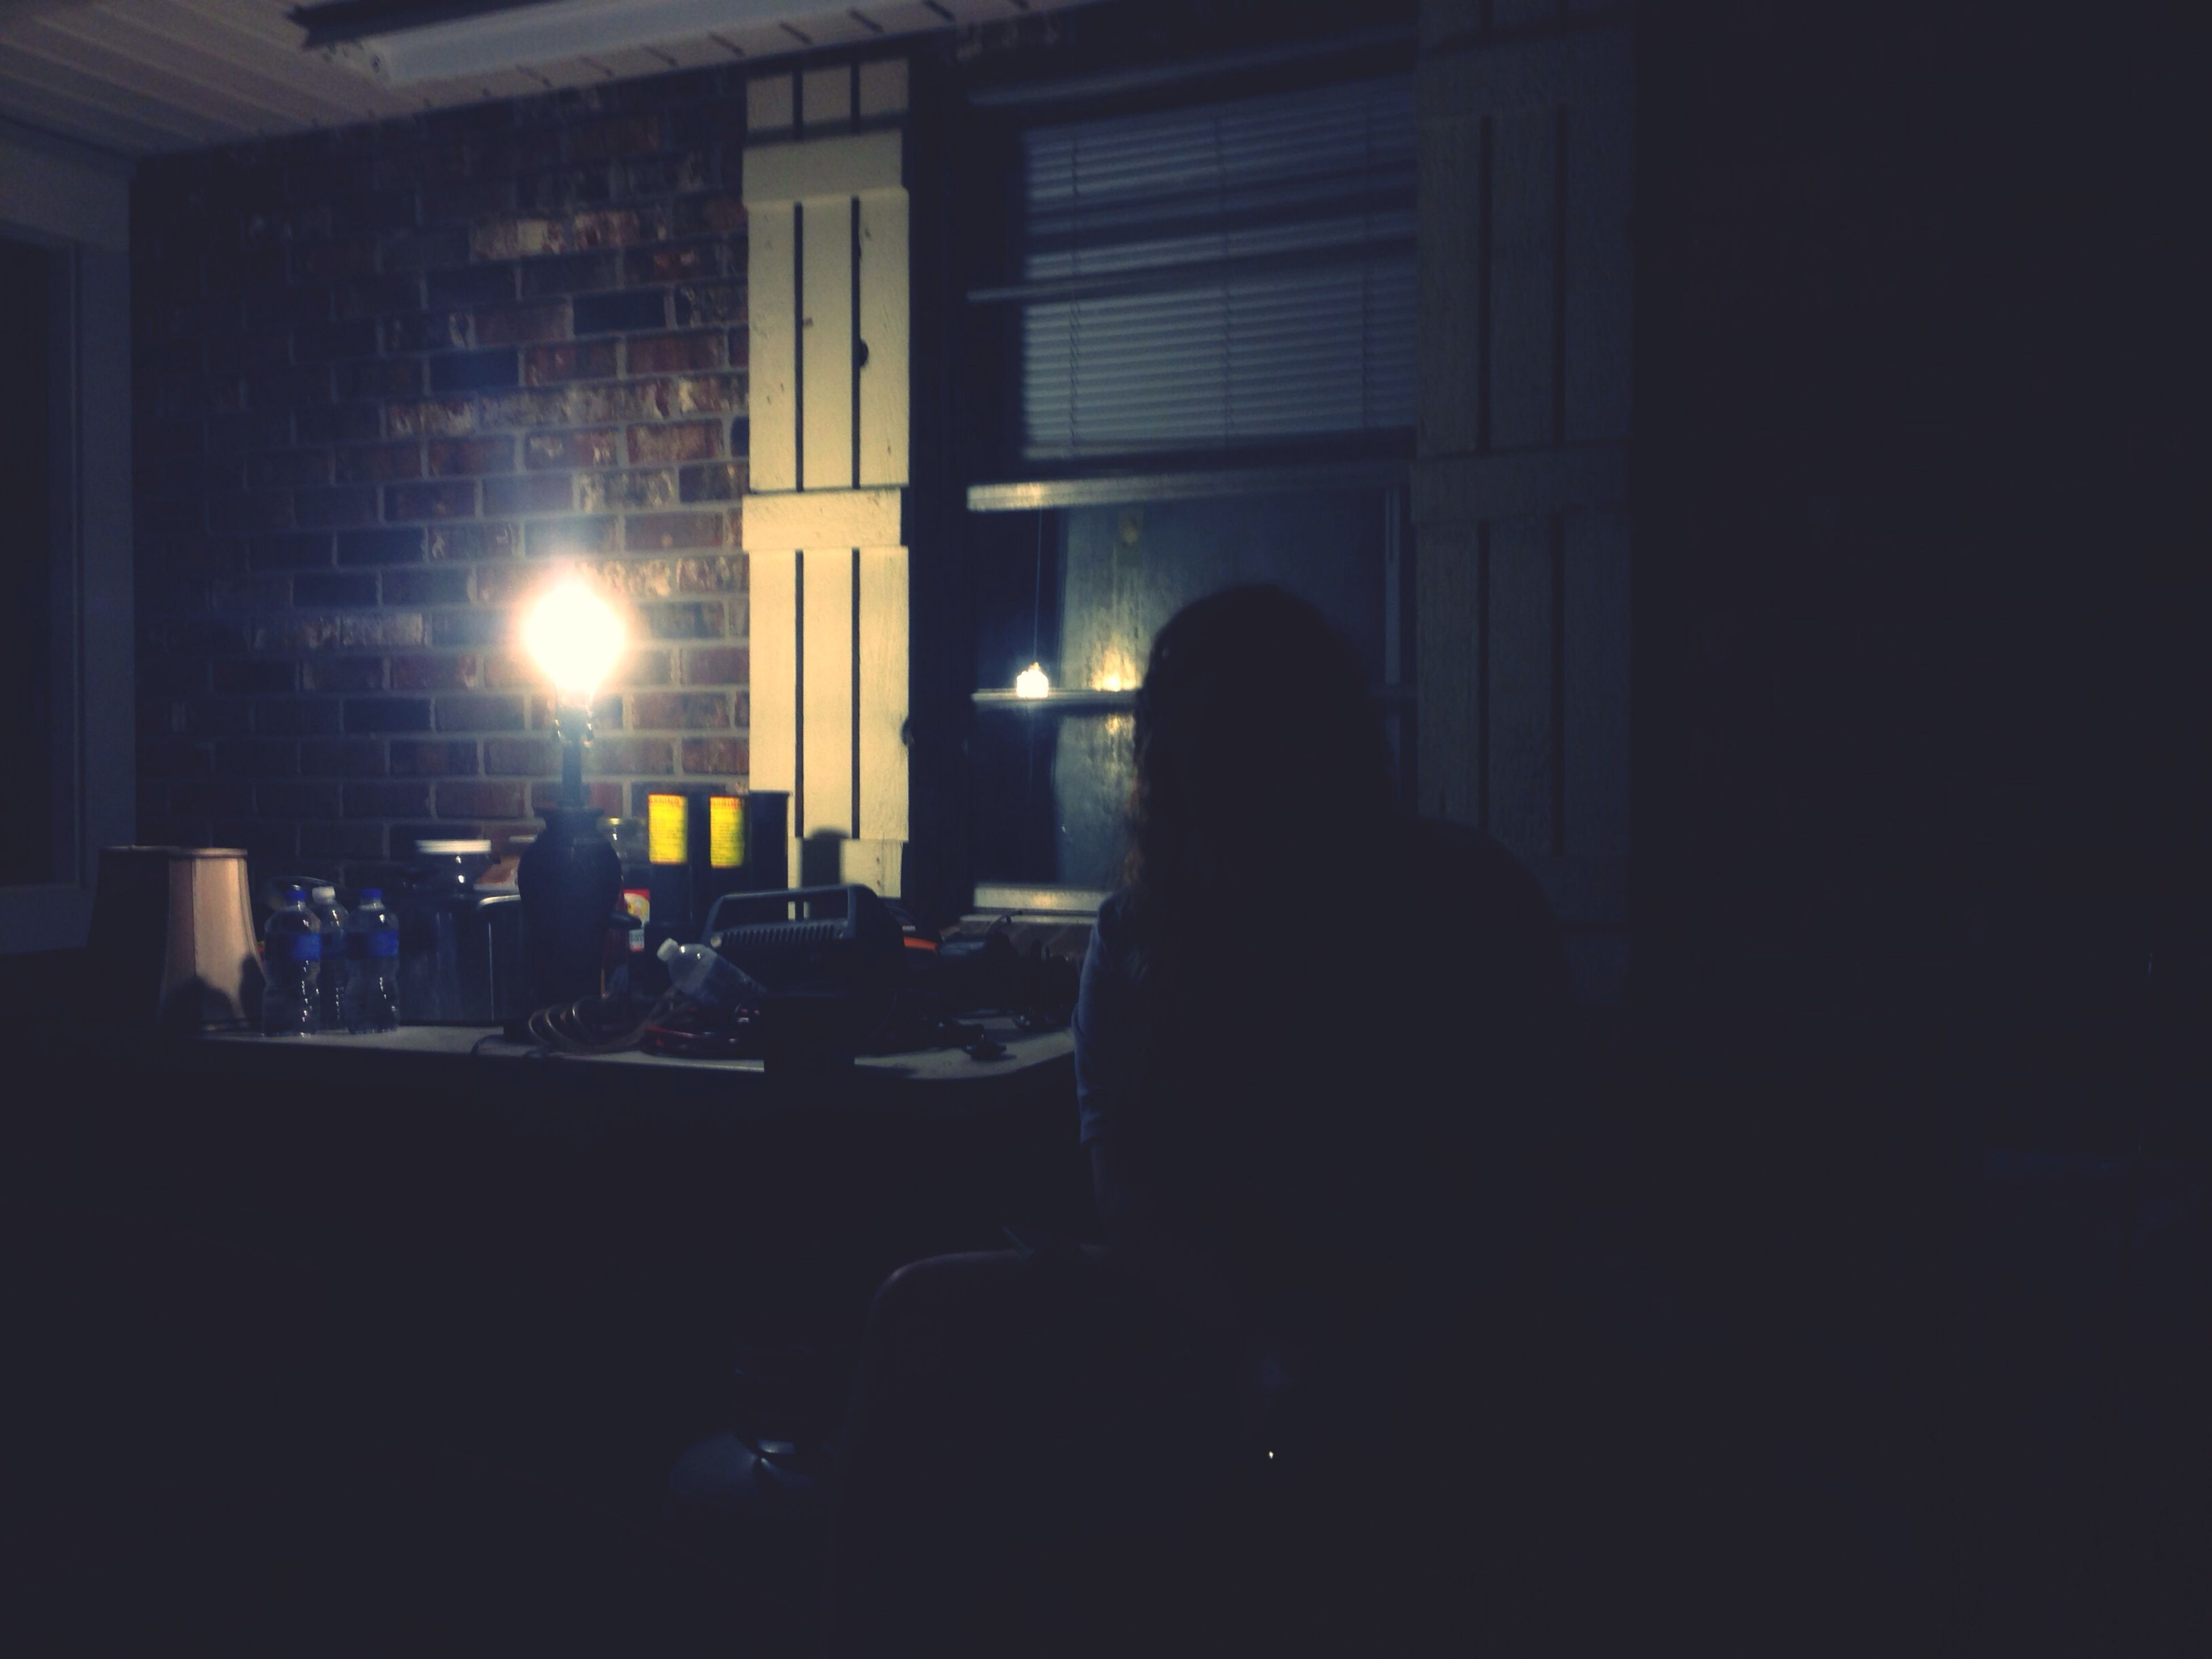 indoors, men, sitting, window, lifestyles, rear view, leisure activity, architecture, person, built structure, chair, silhouette, dark, illuminated, side view, transportation, unrecognizable person